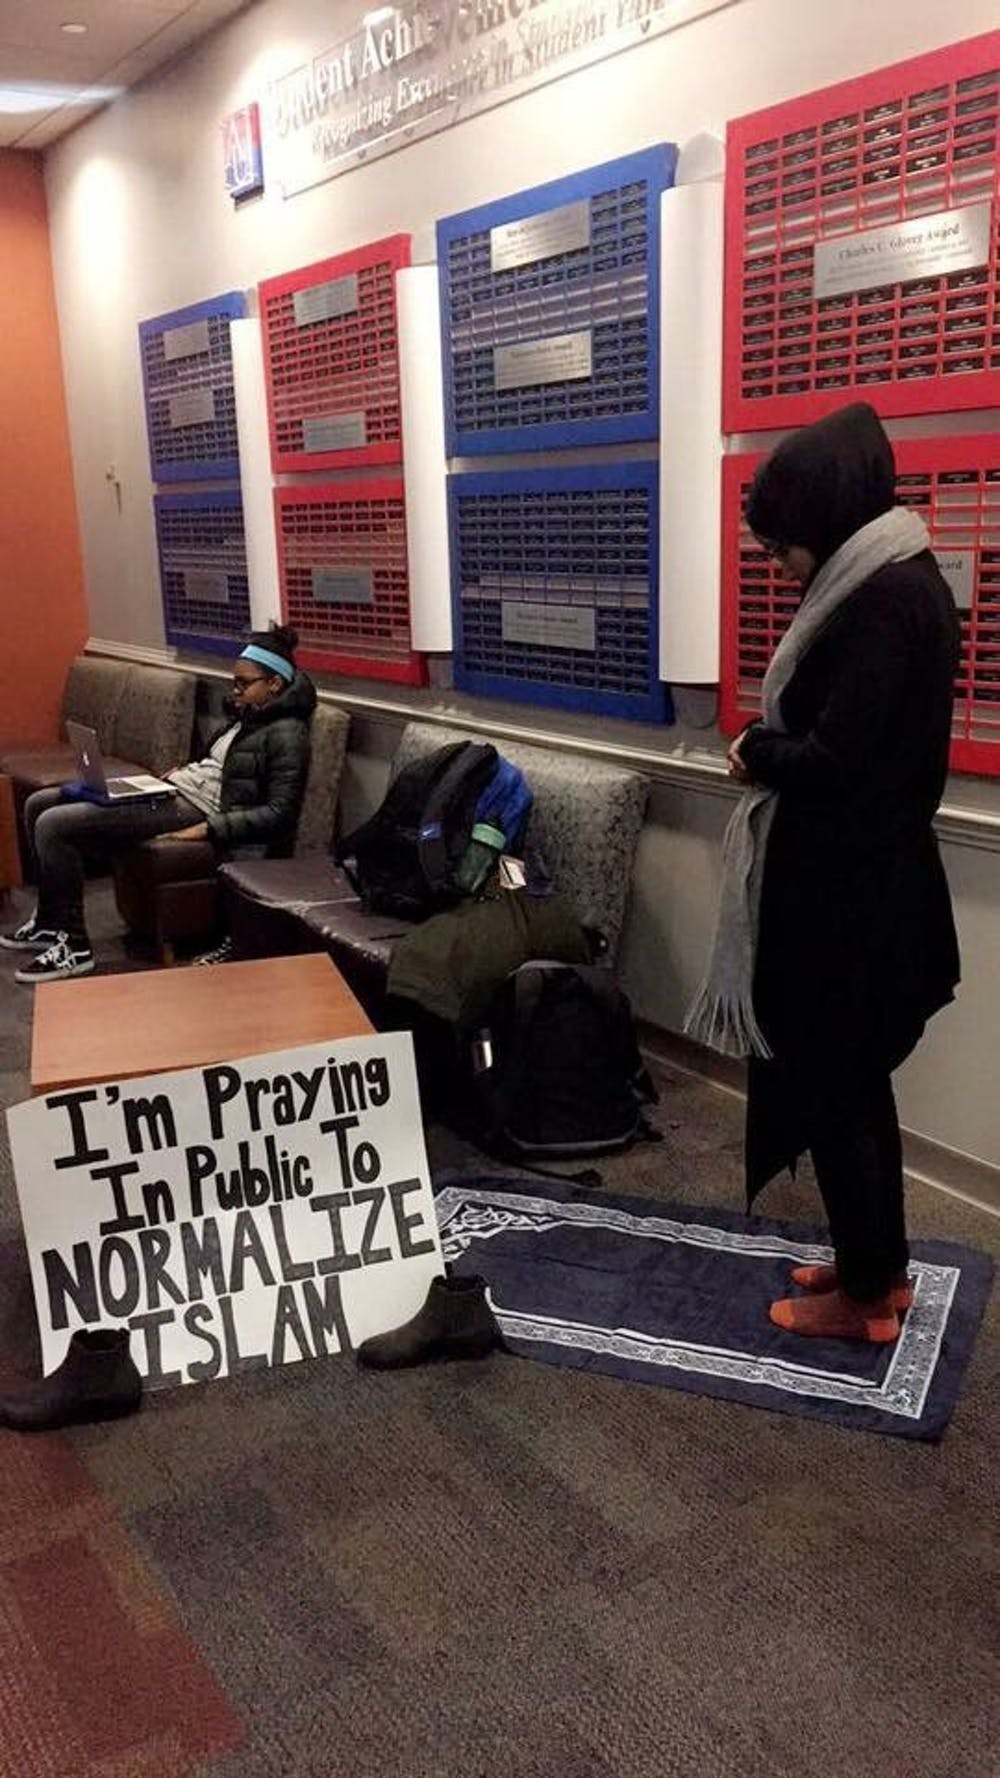 AU student prays in MGC to normalize Islam